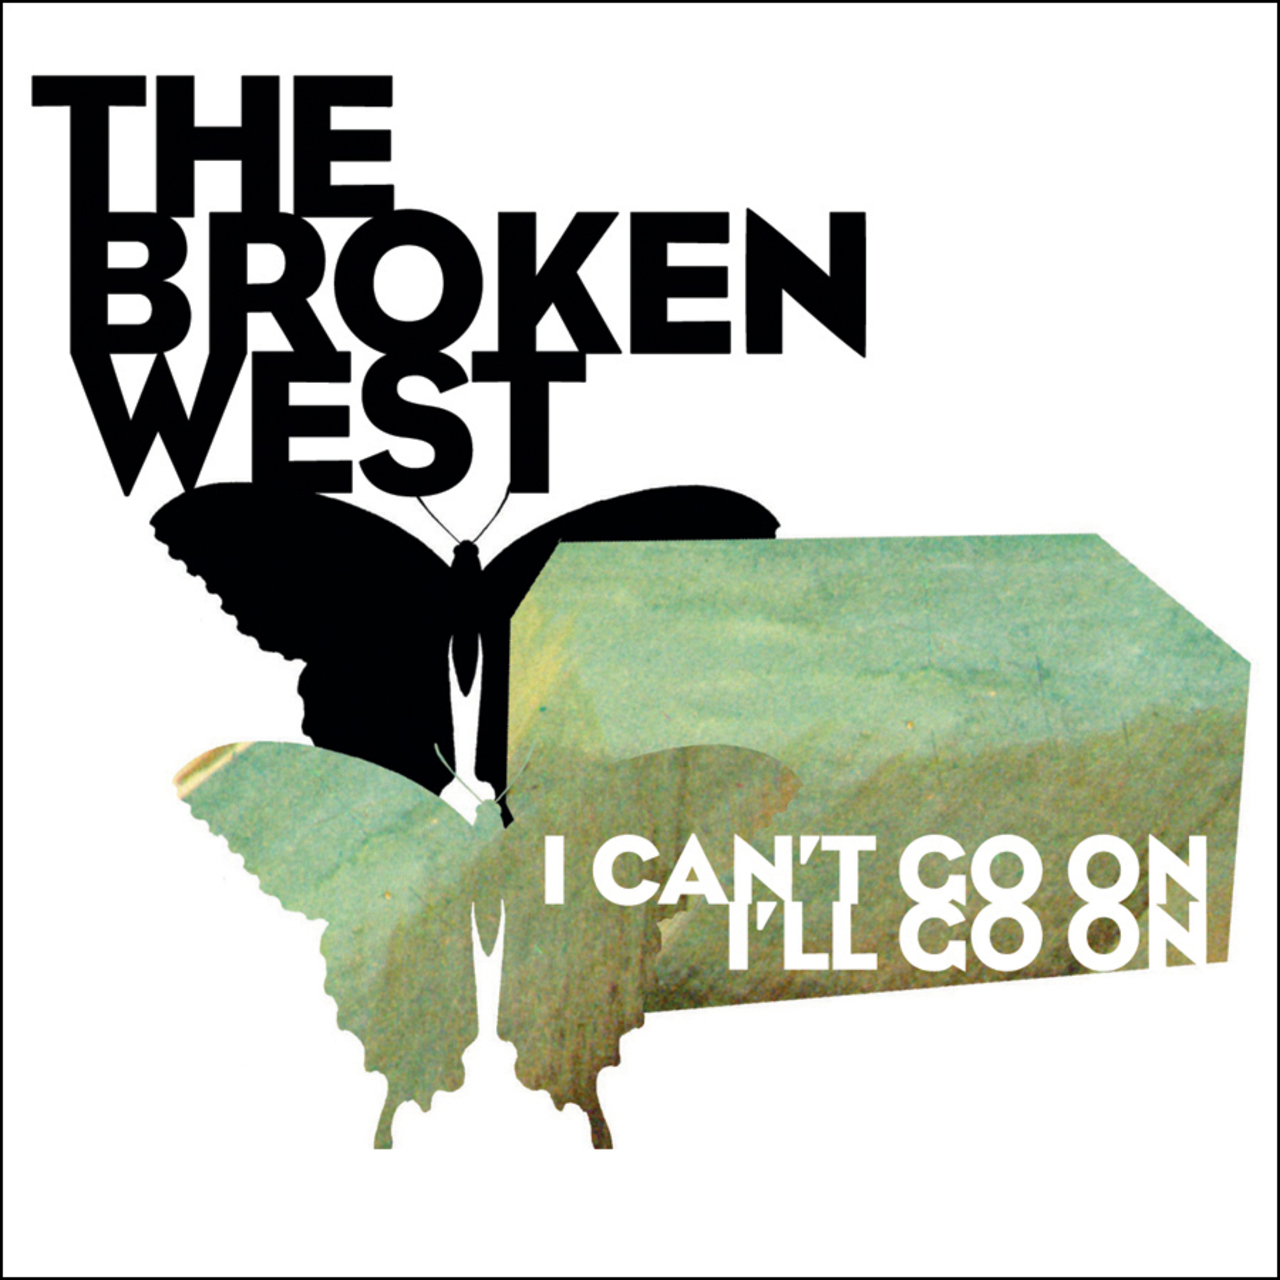 The Broken West's I Can't Go On, I'll Go On is out now.